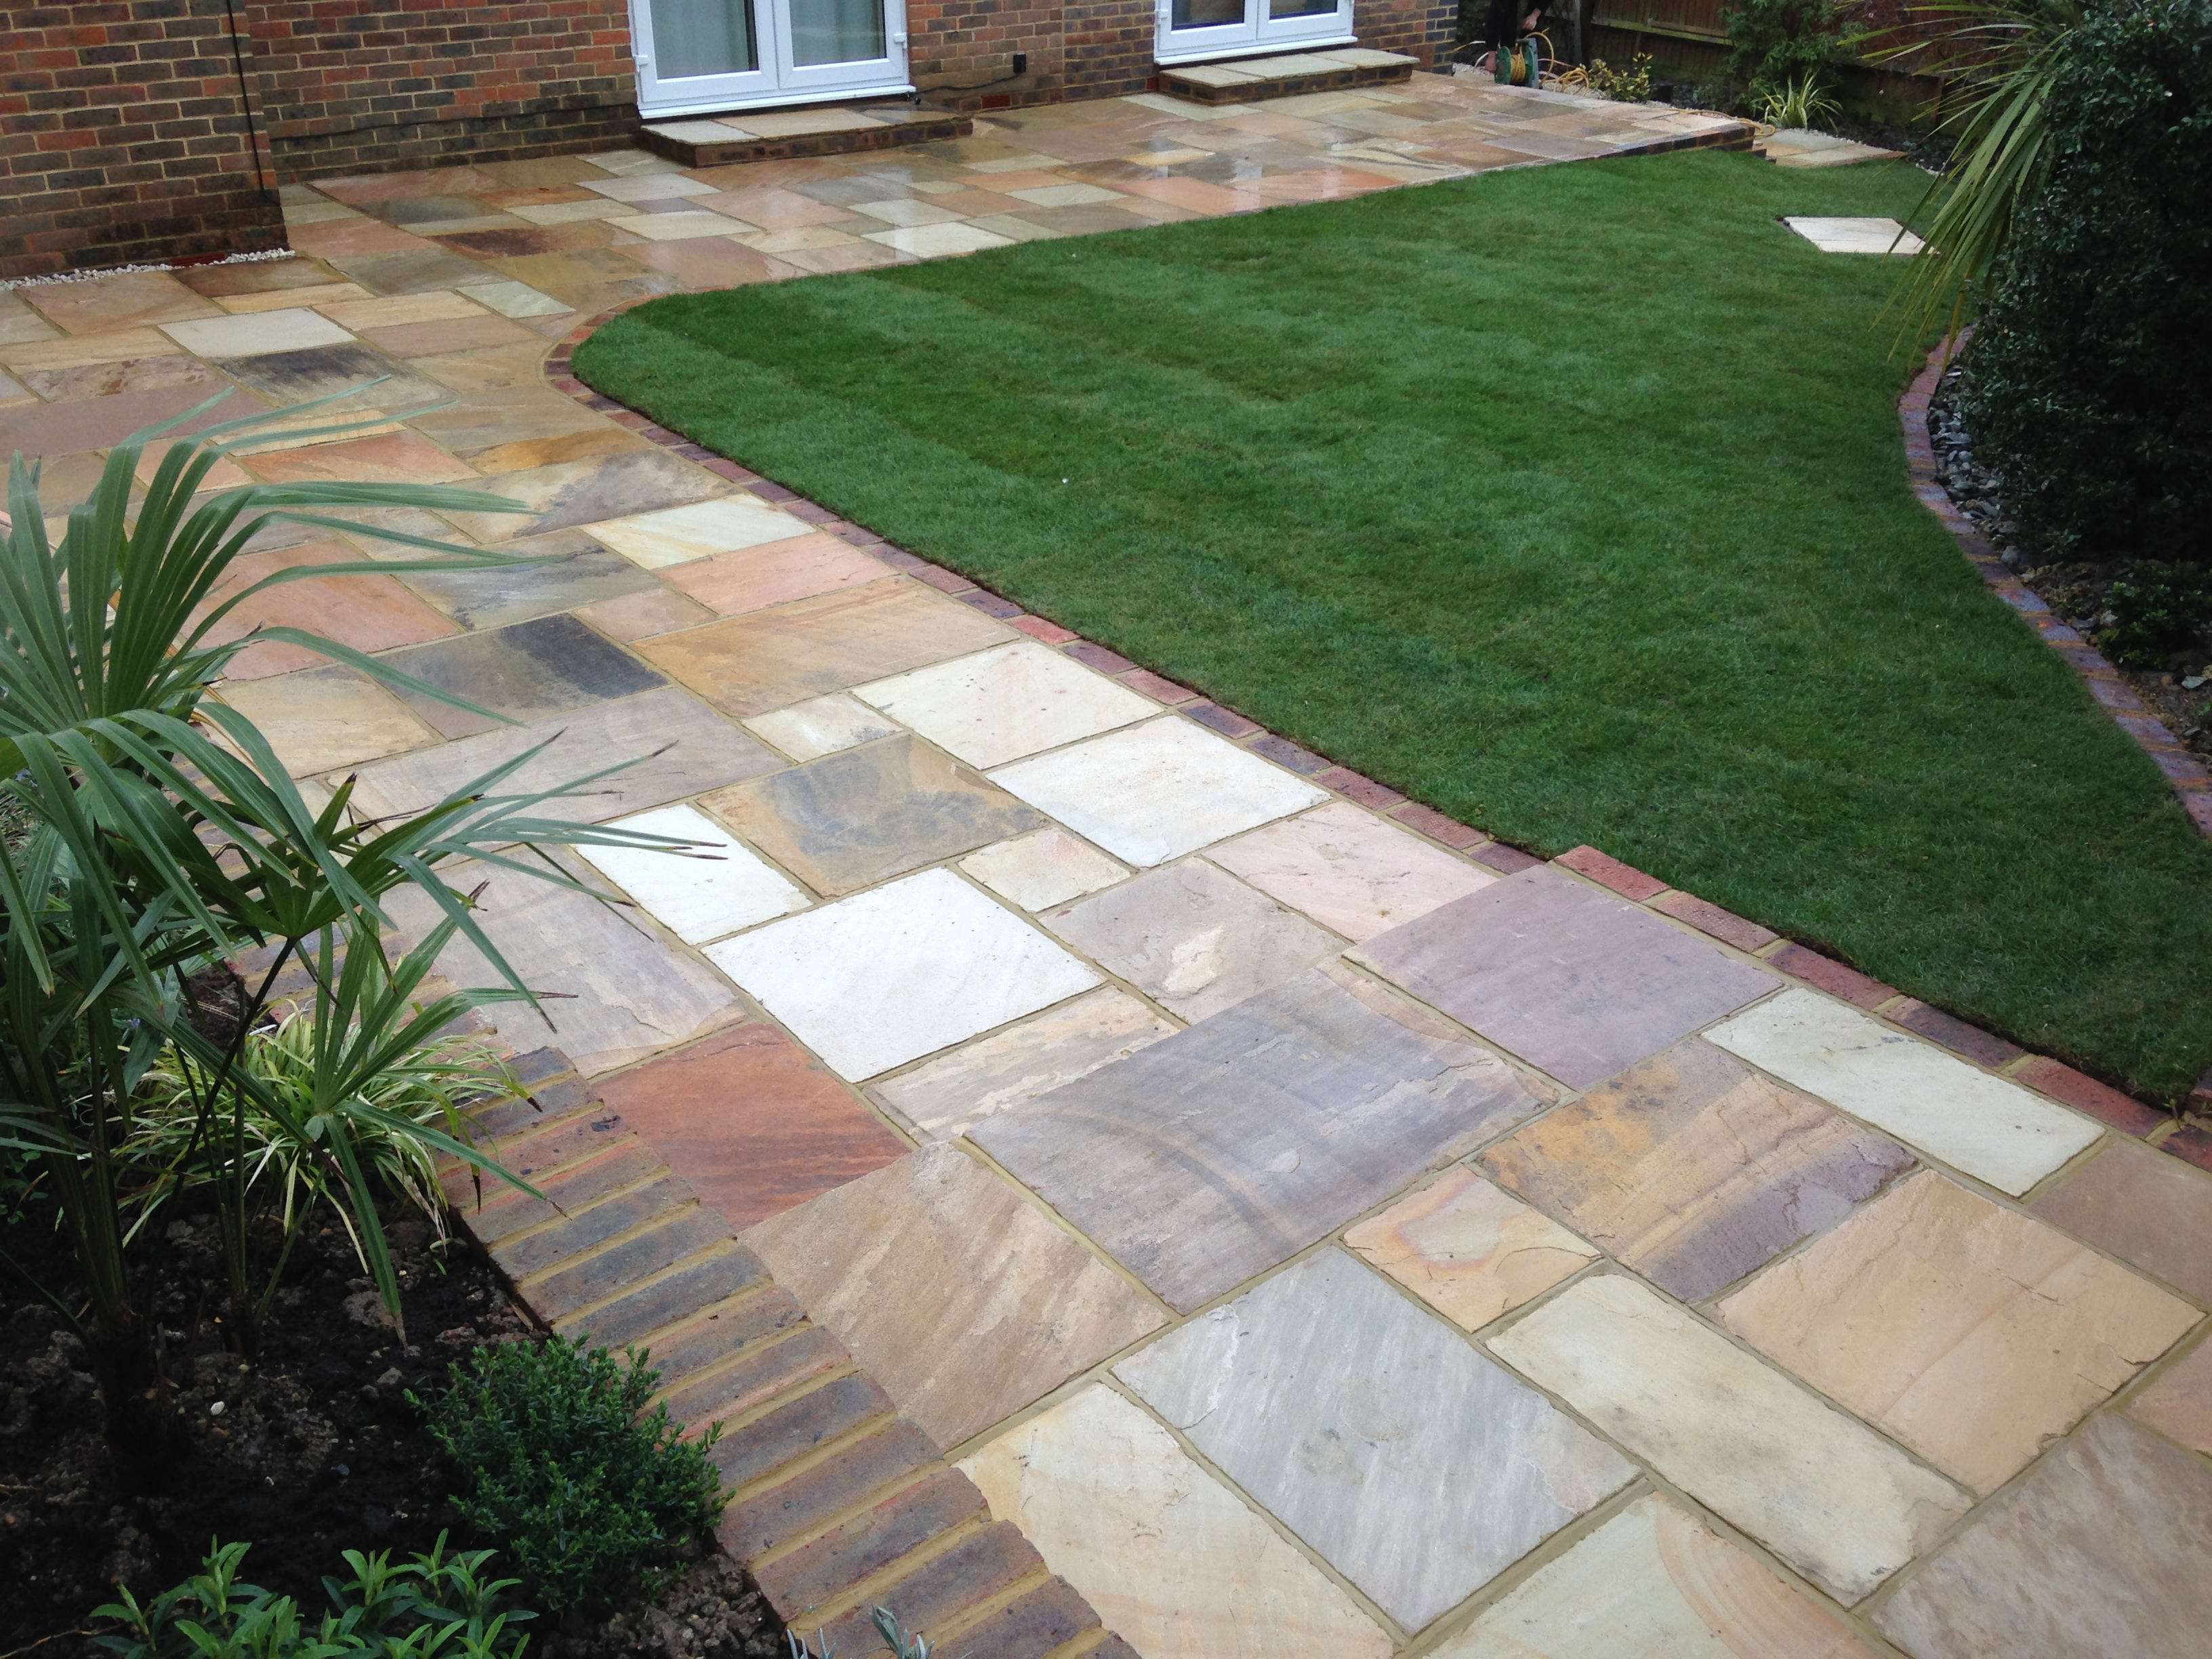 Triangular garden with patio and lawn in horsham area